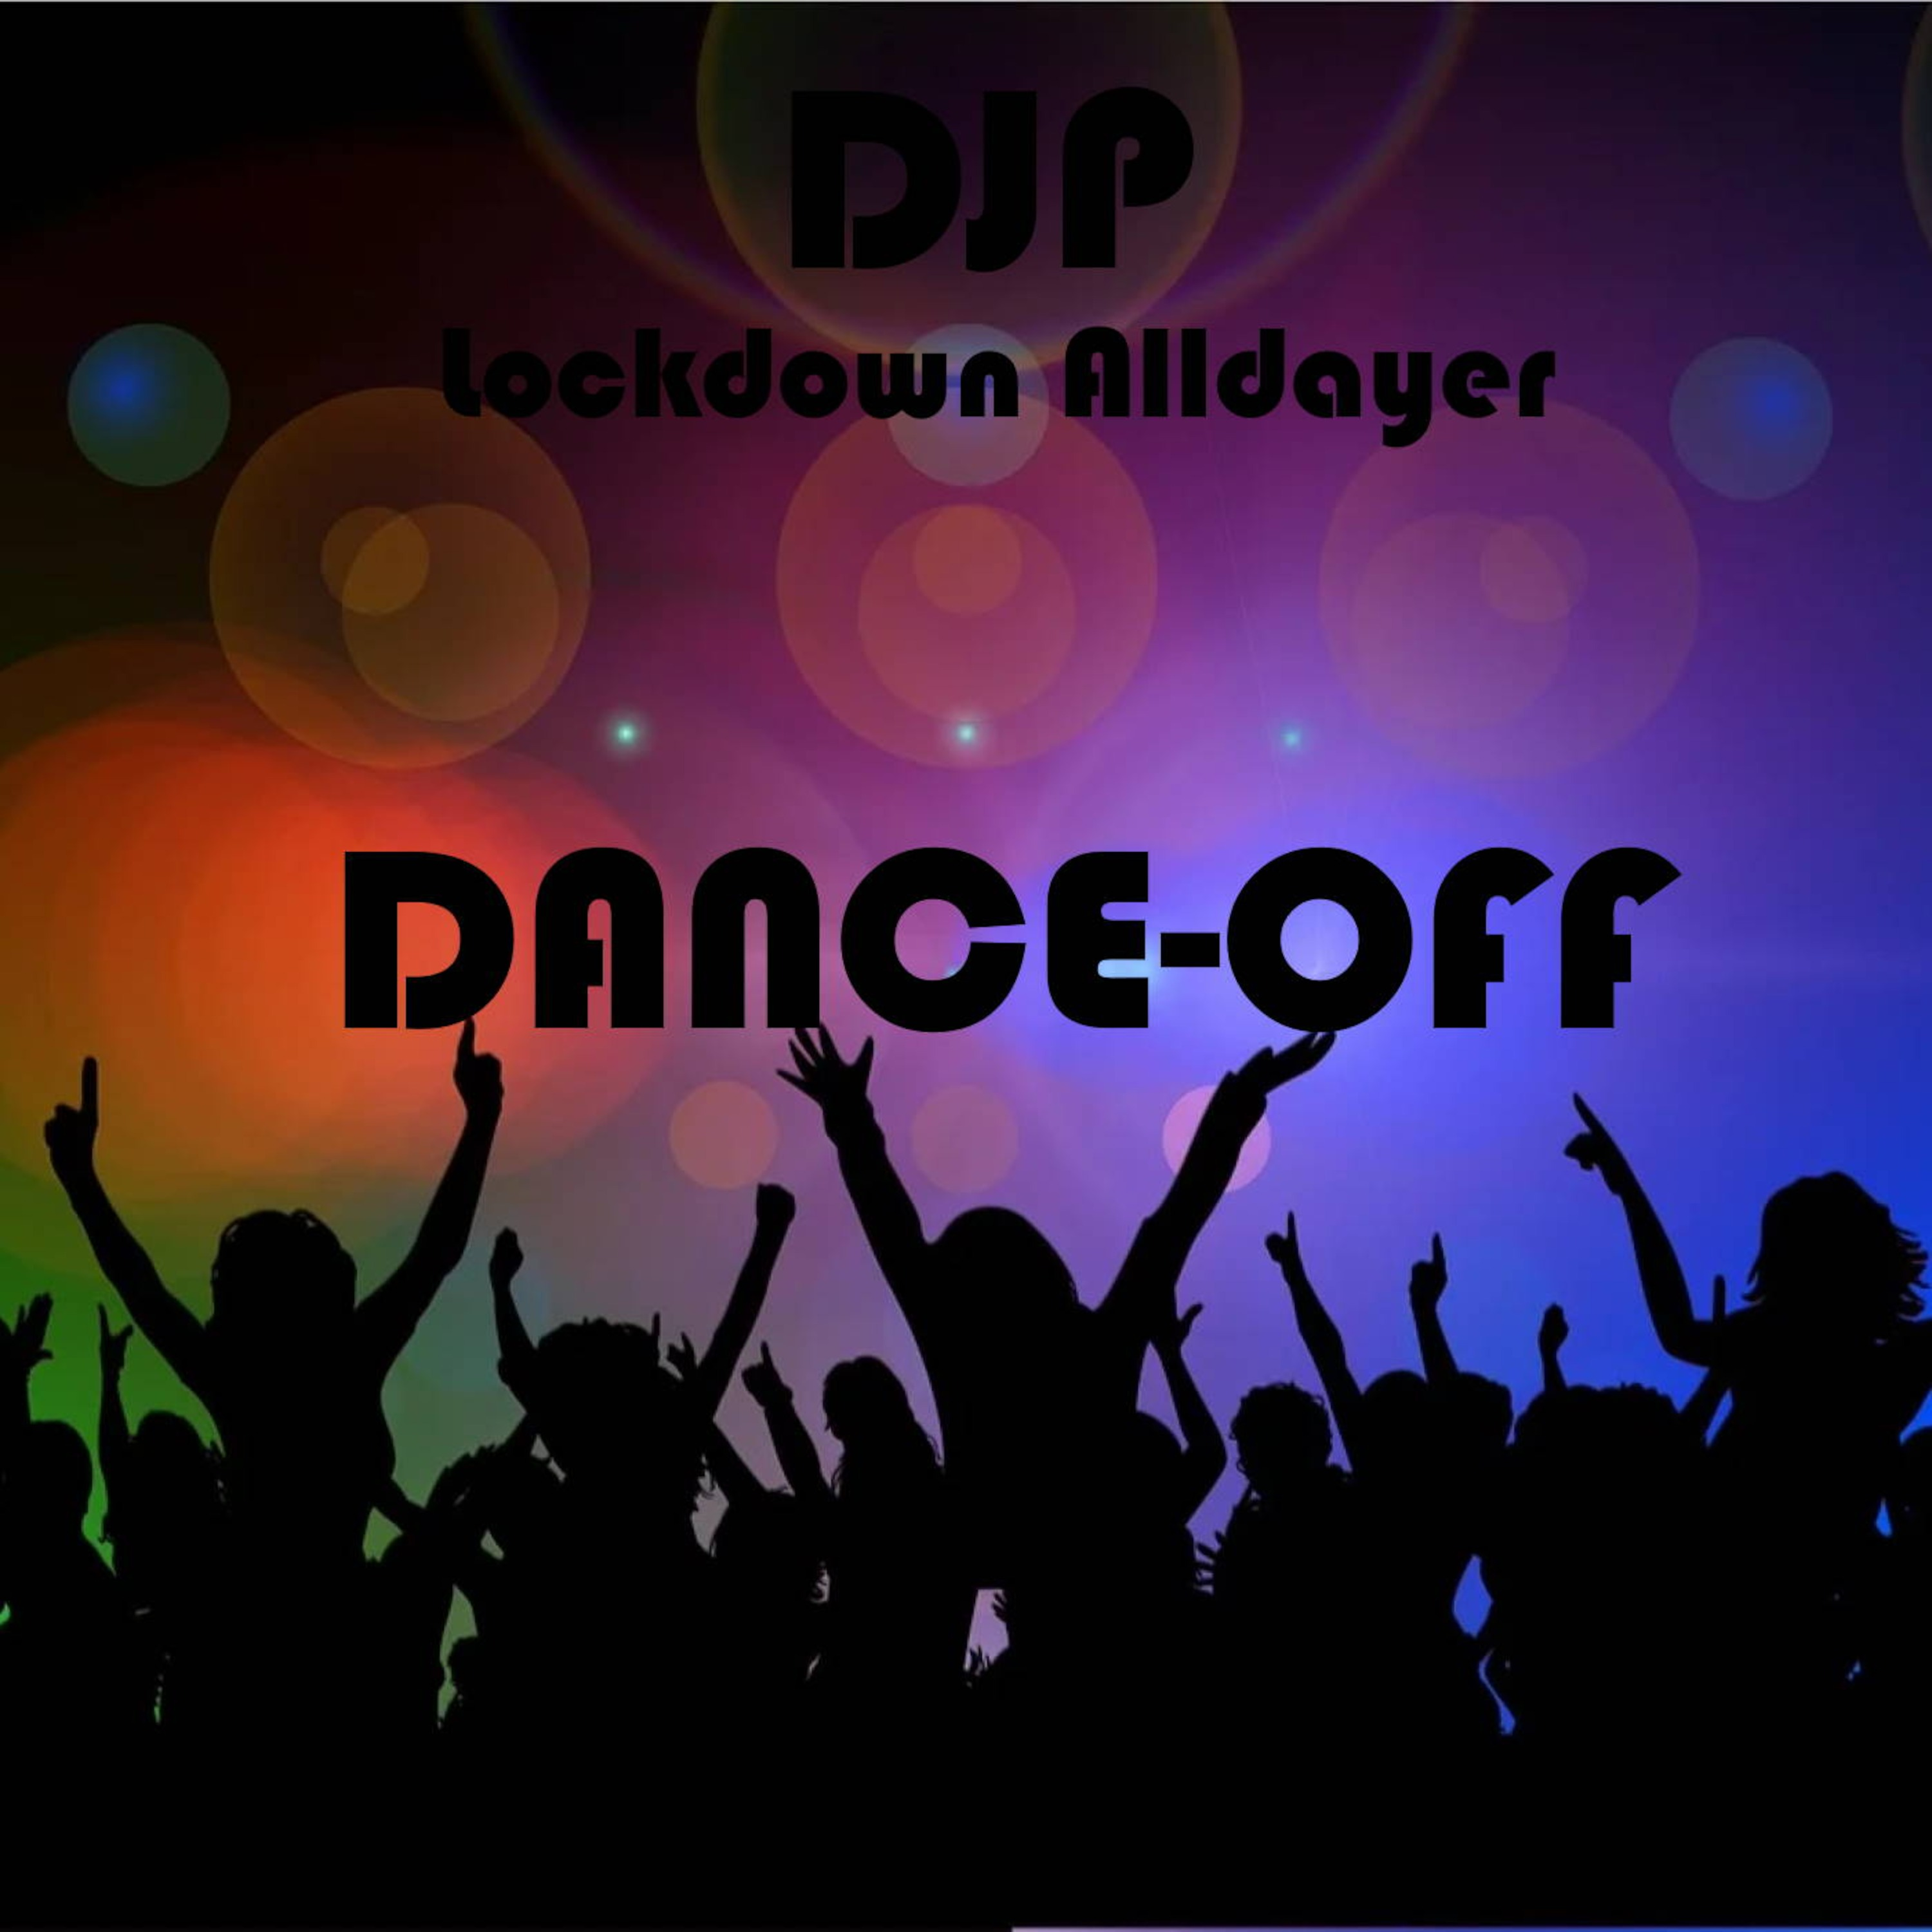 DJP - Dance-off Lockdown Alldayer mix